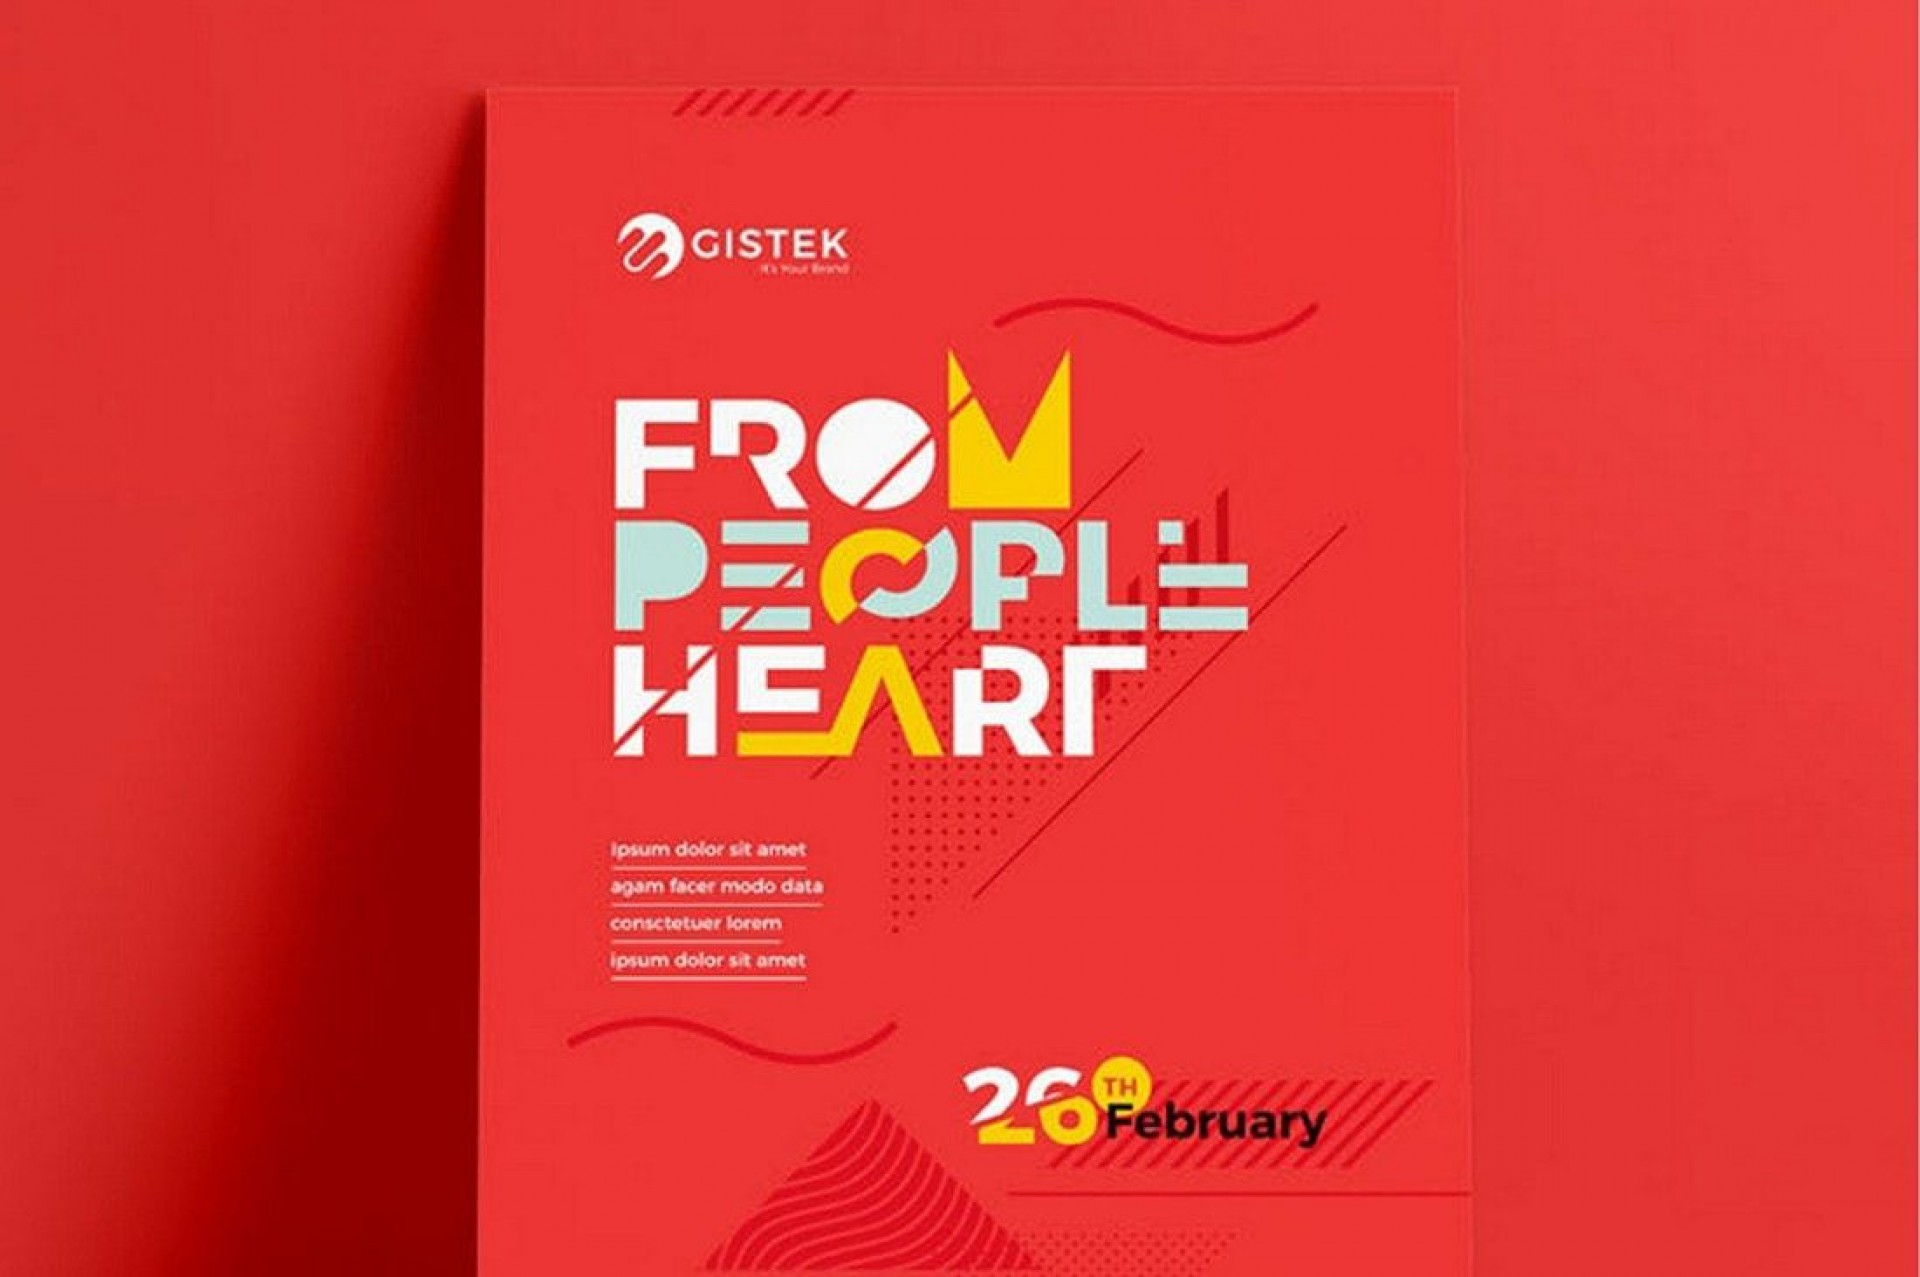 003 Exceptional Adobe Photoshop Psd Poster Template Free Download Image 1920